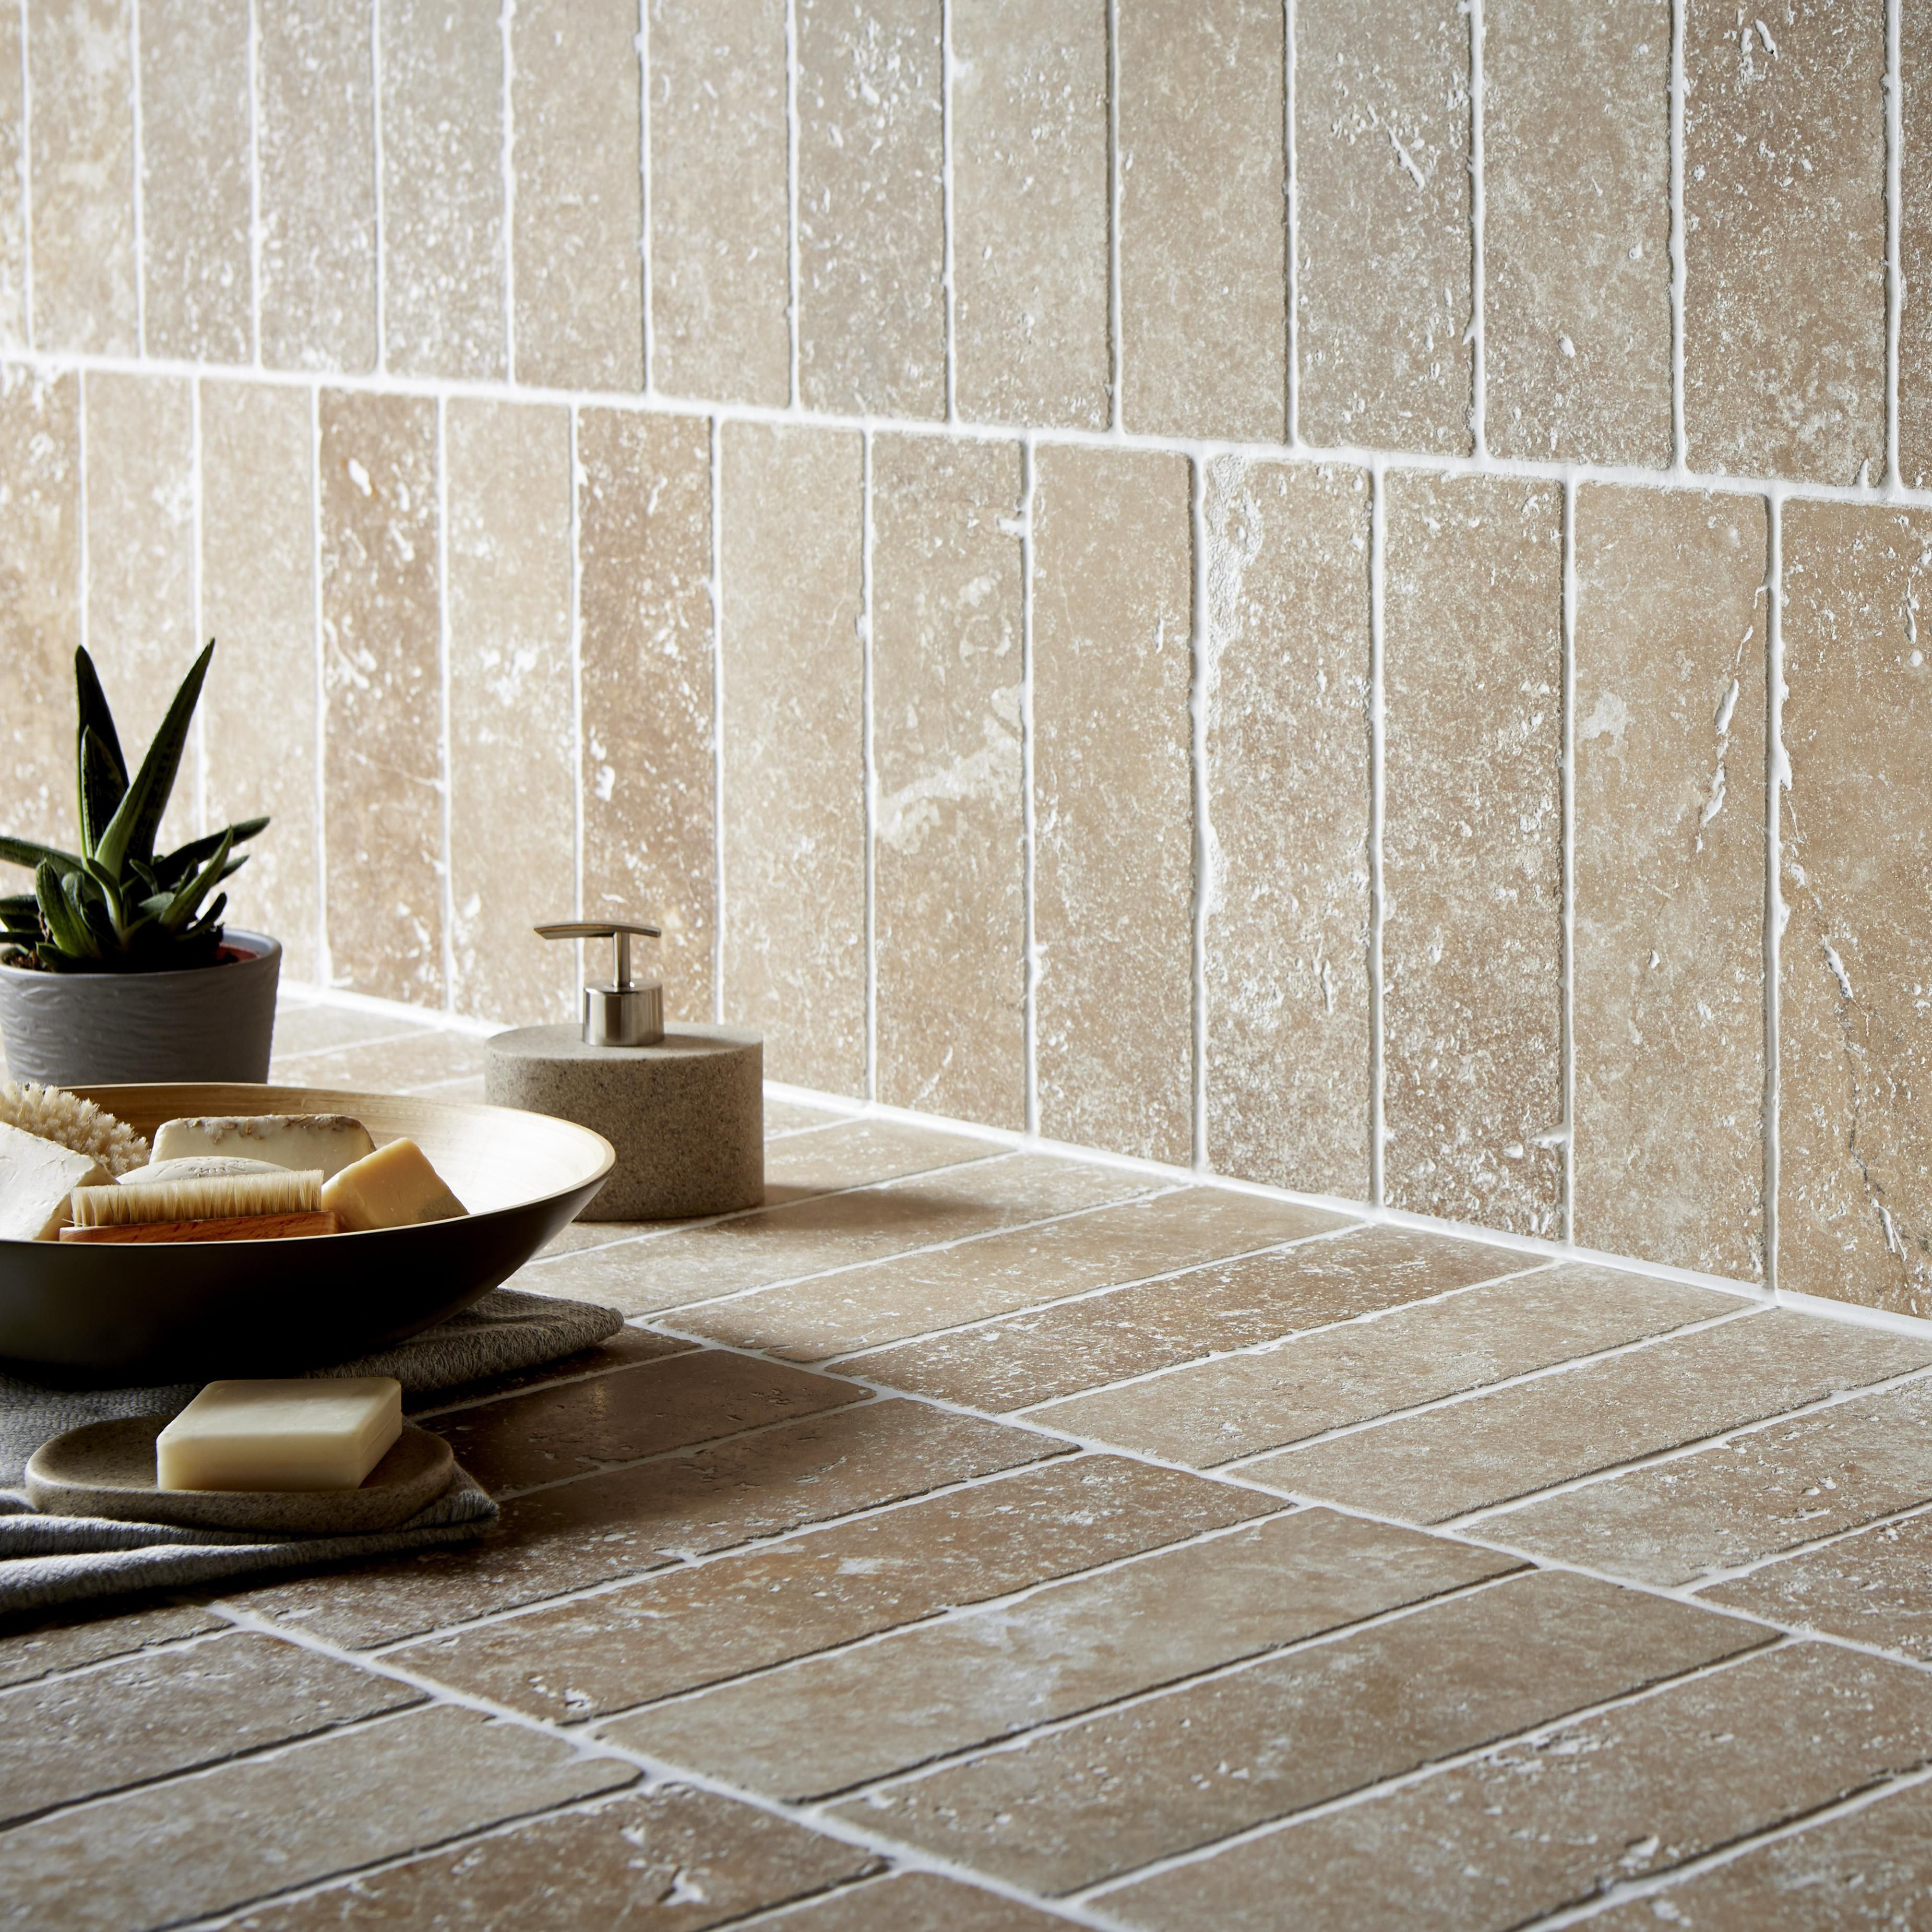 Tumbled Noce Stone Effect Travertine Wall Tile Pack Of 15